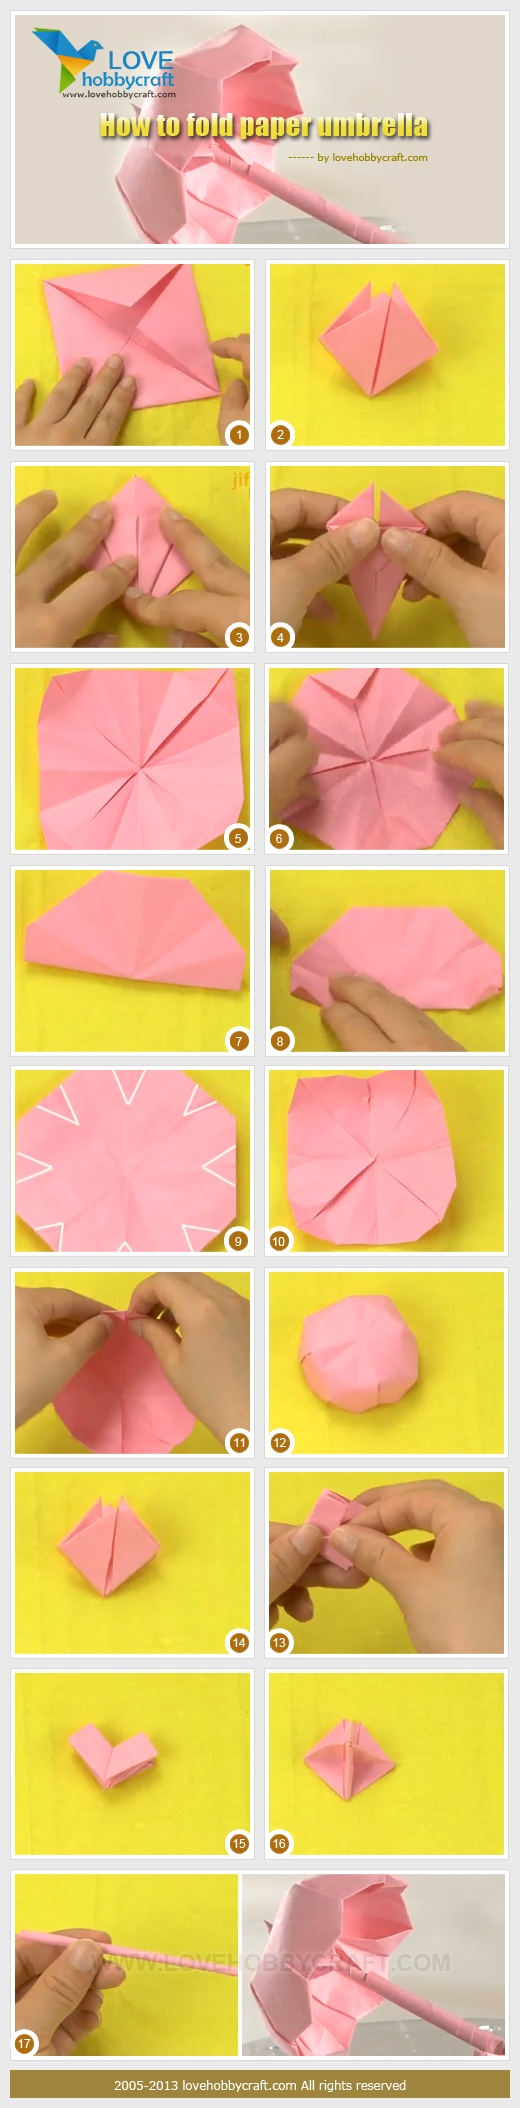 step guide for making paper umbrella